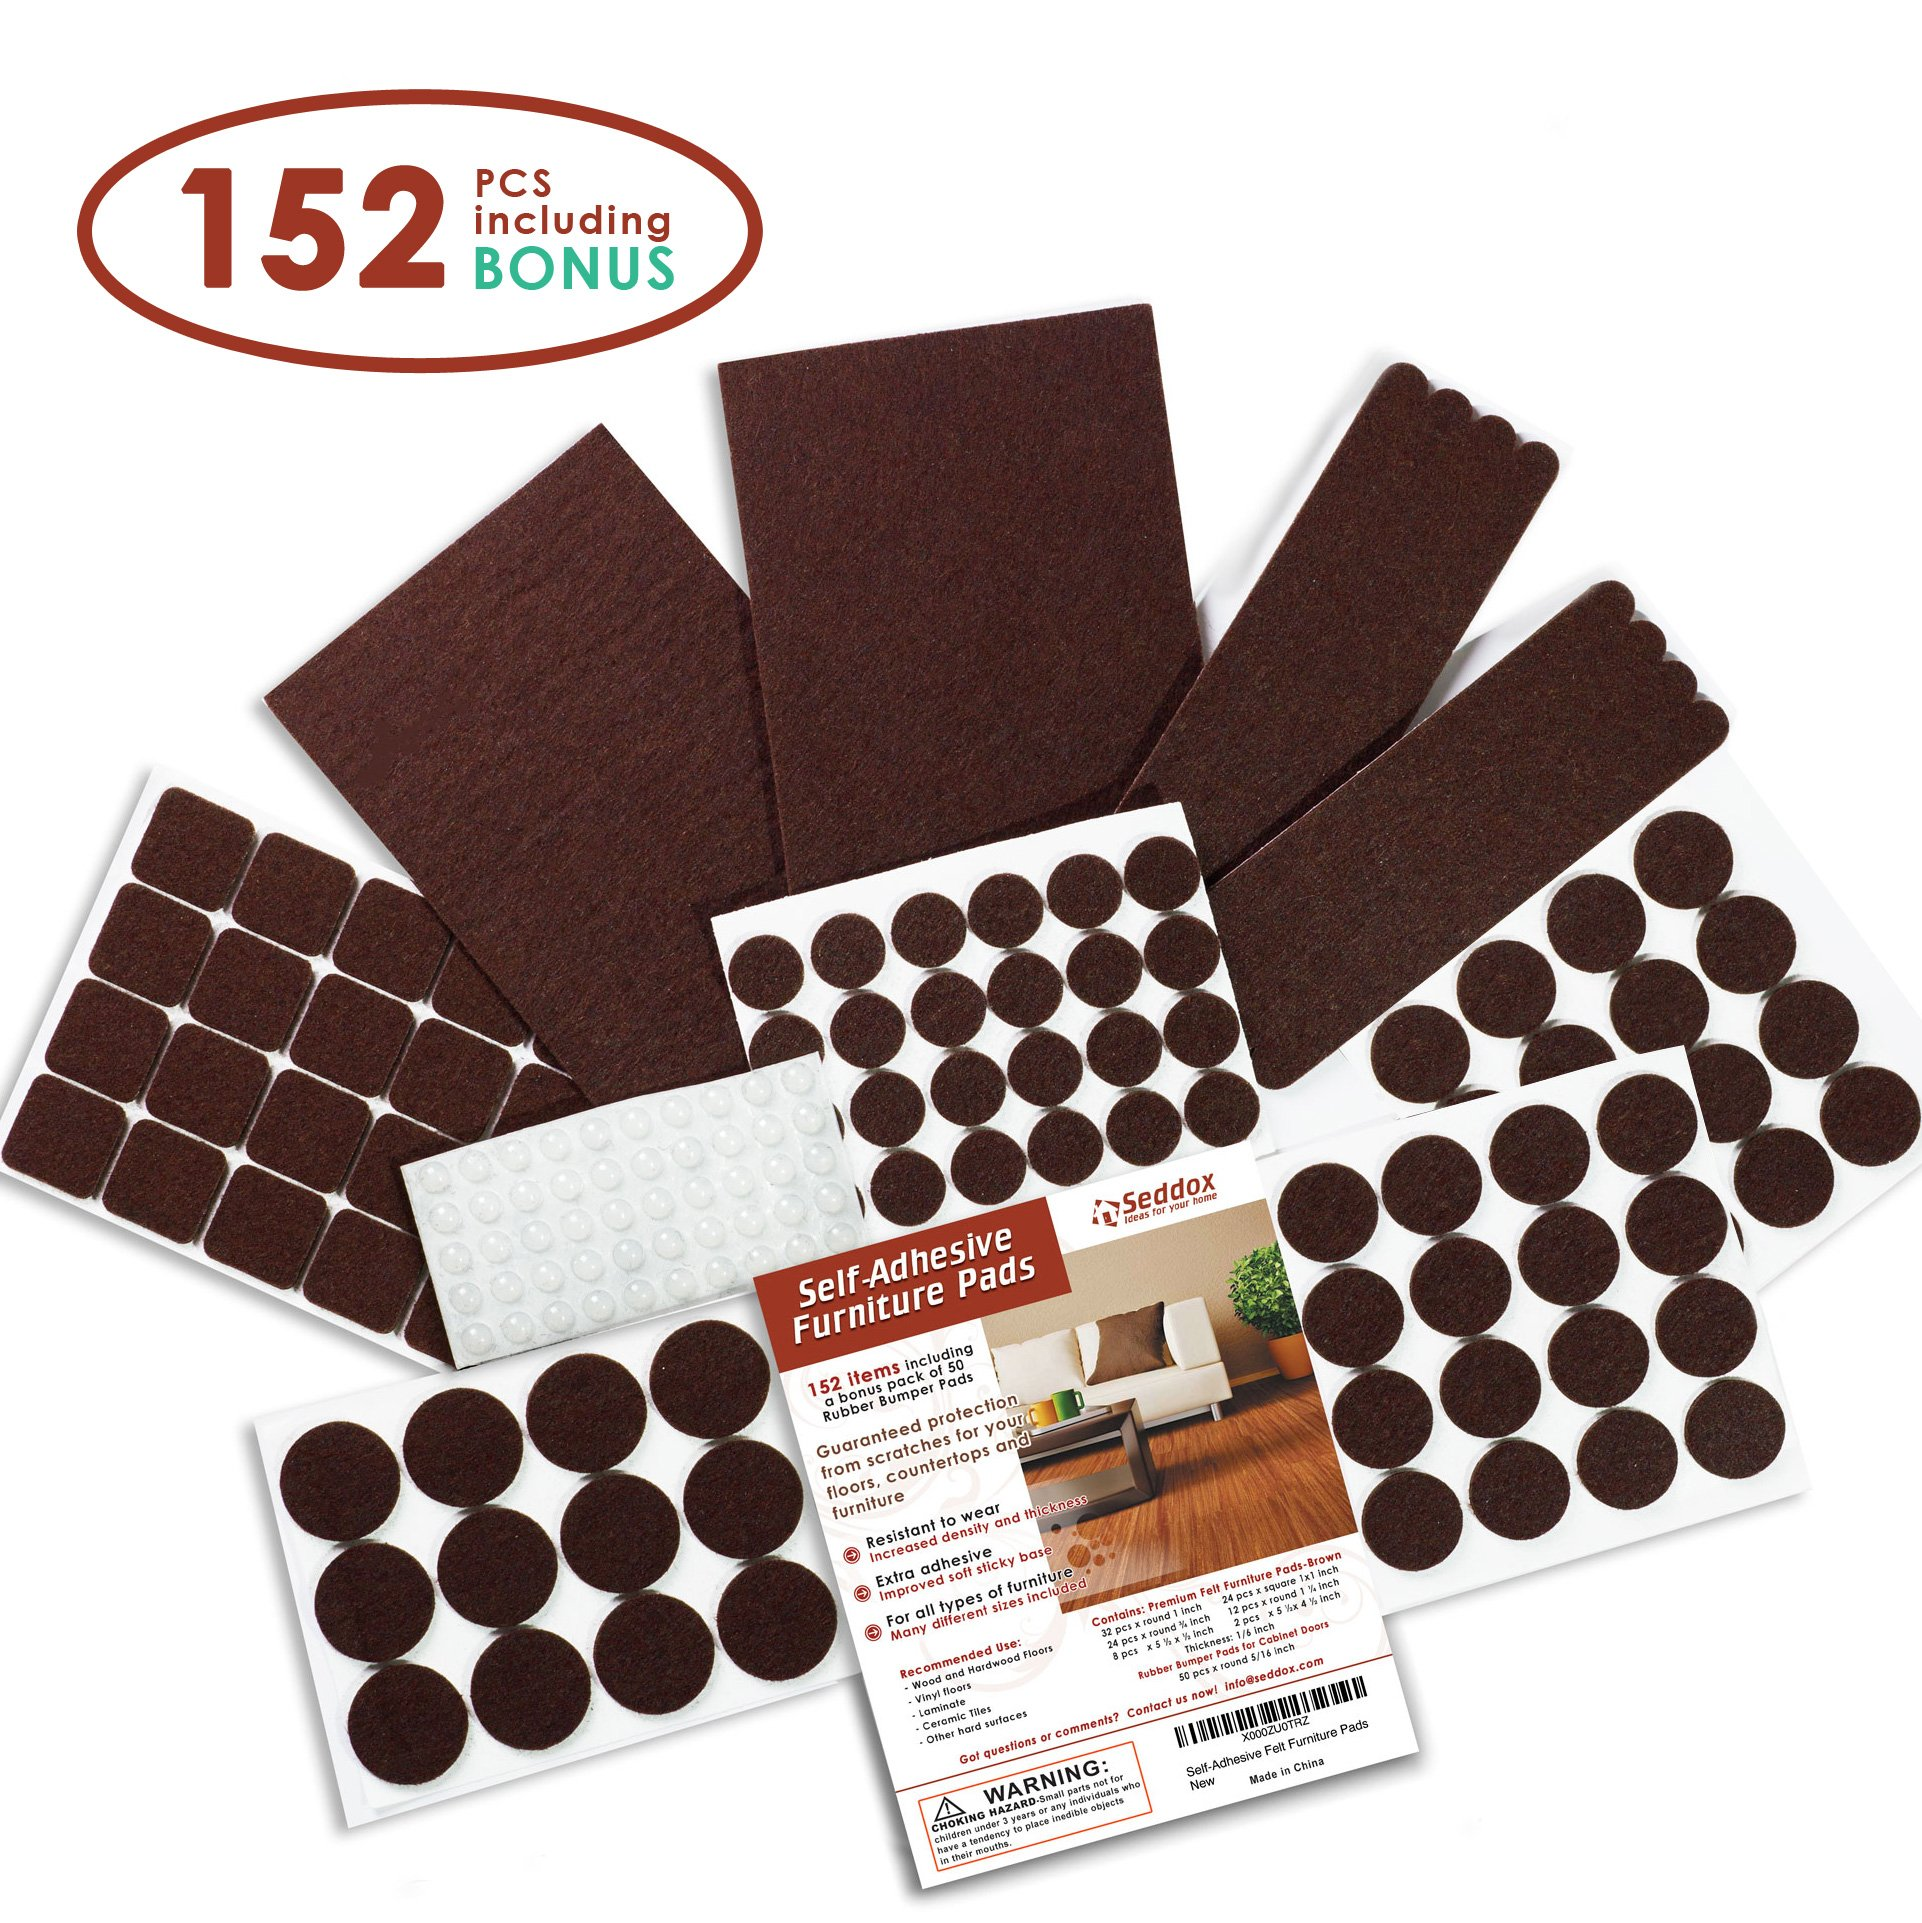 Seddox PREMIUM Felt Furniture Pads Set - 152 pieces Including Bonus Rubber Bumper Pads - Self Stick Extra Adhesive Hardwood Floor Protectors, Felt Pads for Furniture Feet Brown